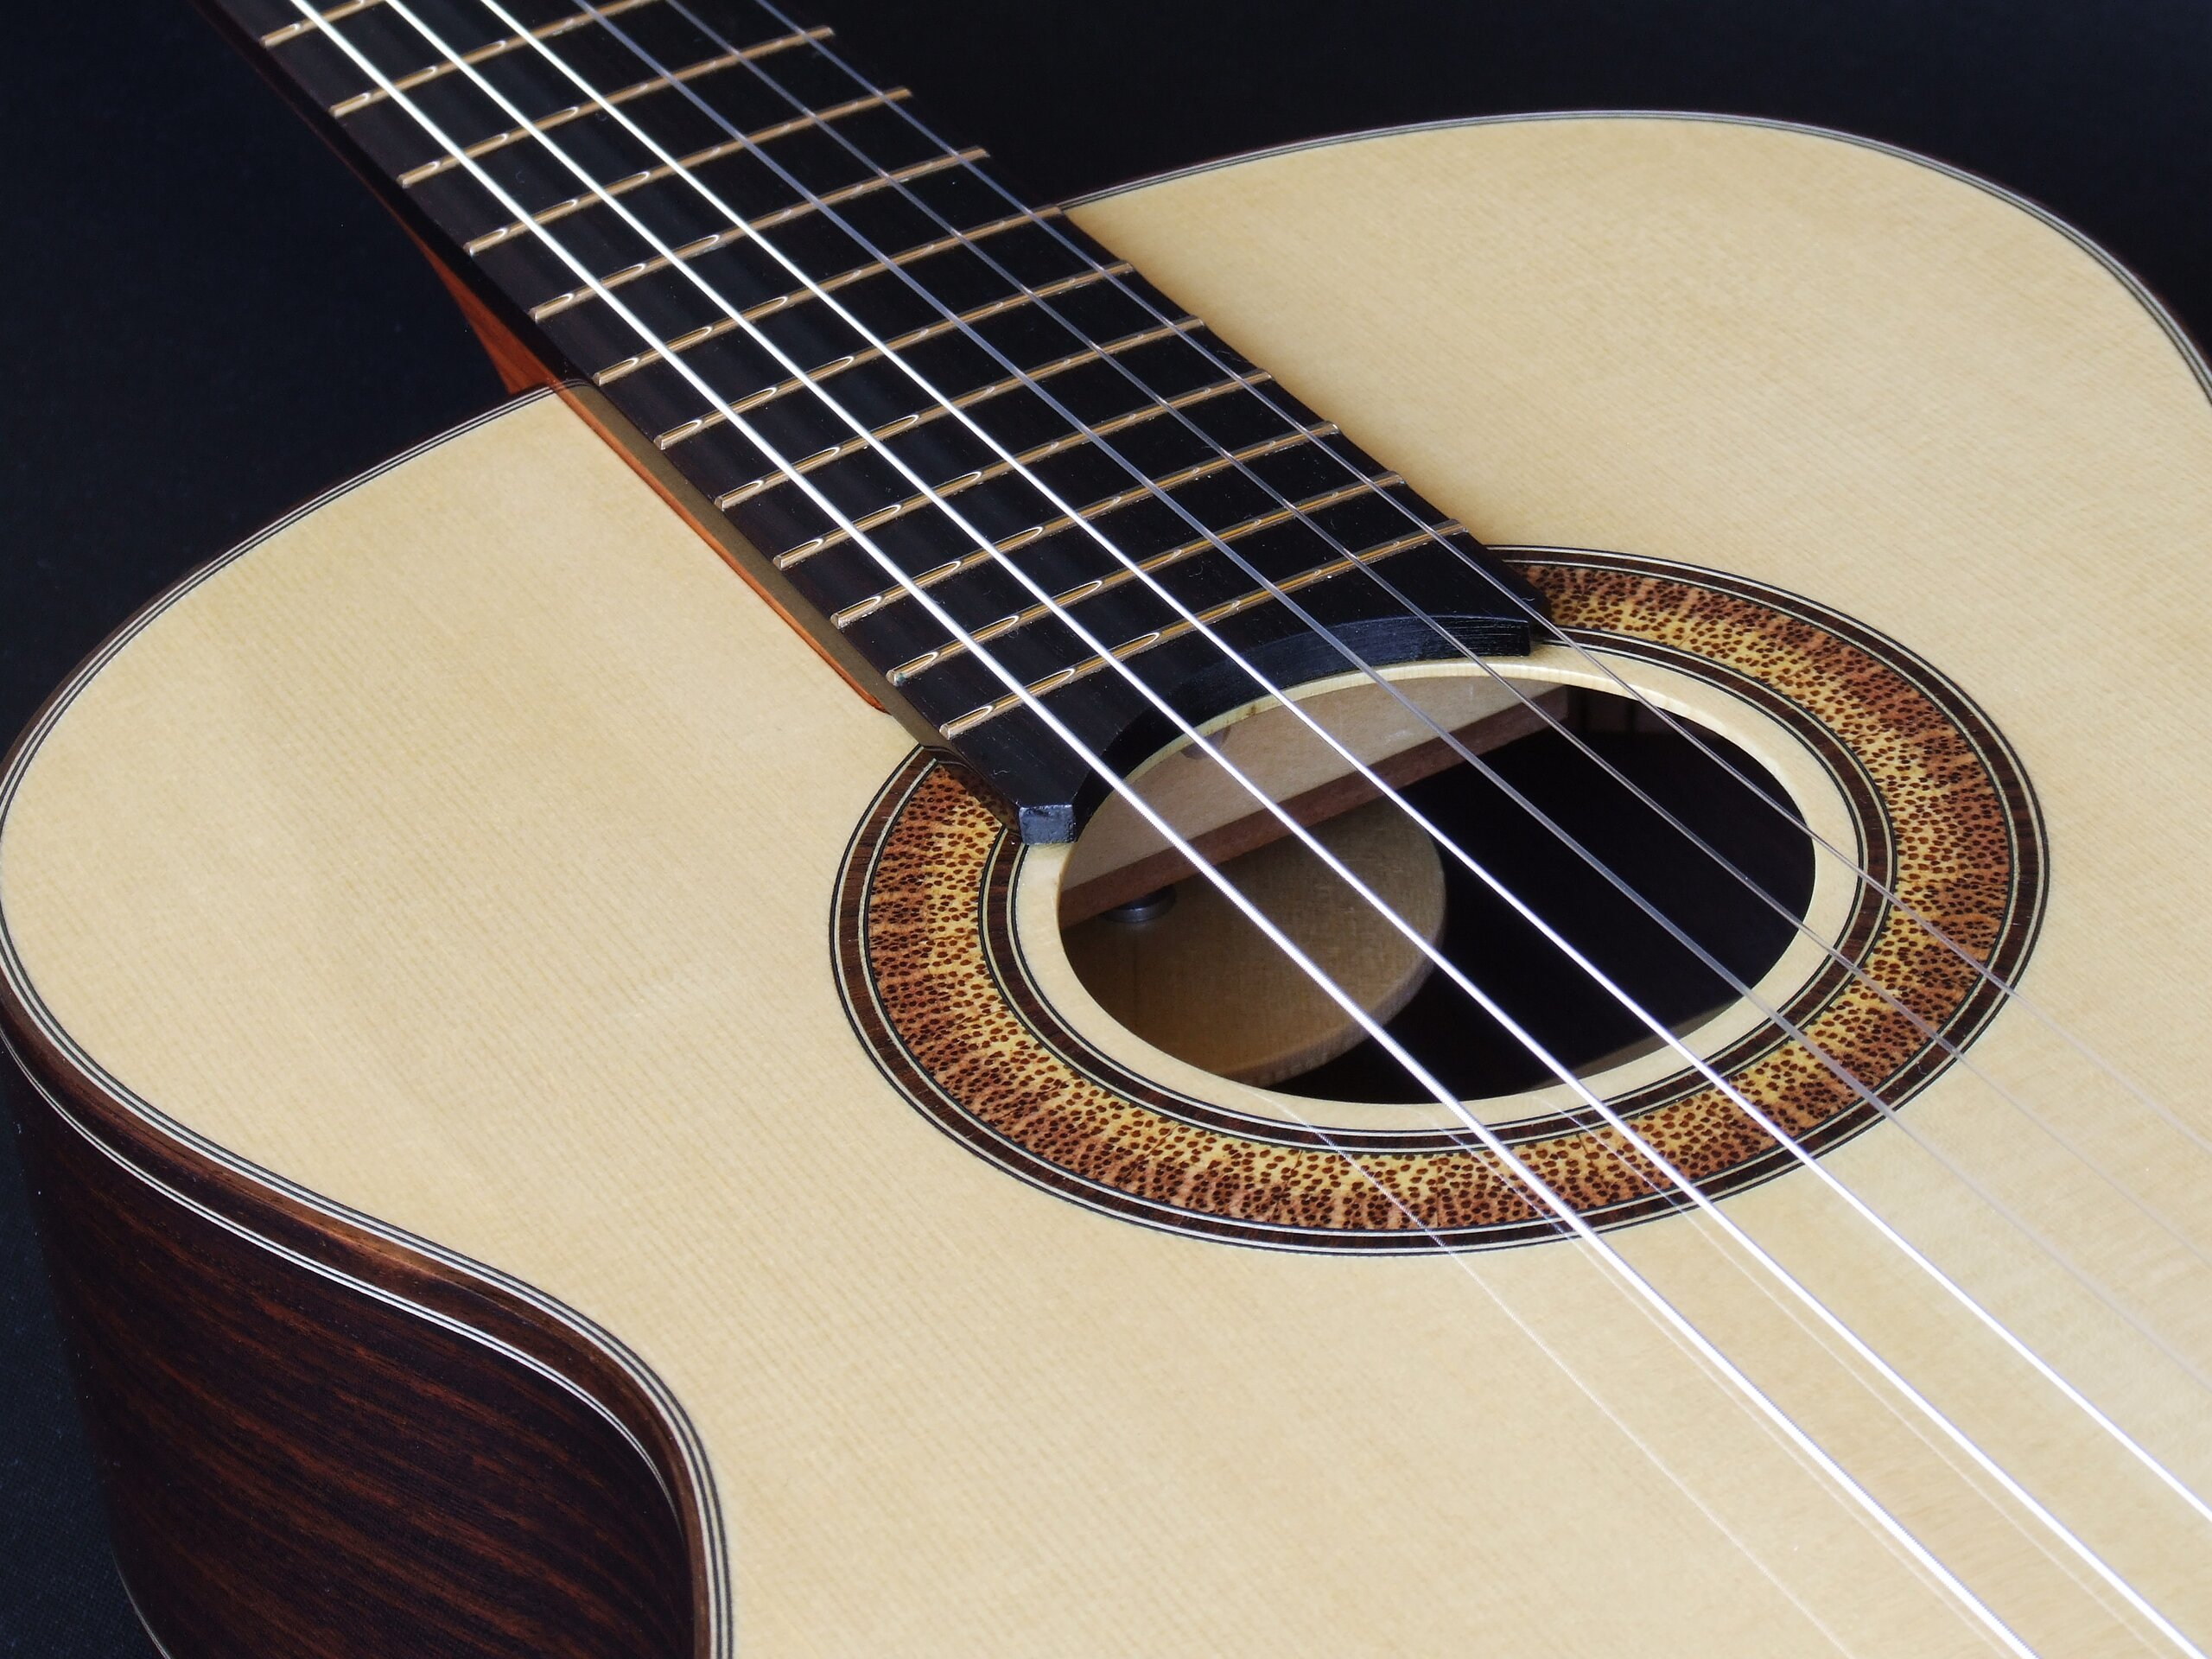 Classical guitar with a tilt neck showing the adjustment wheel through the sound hole